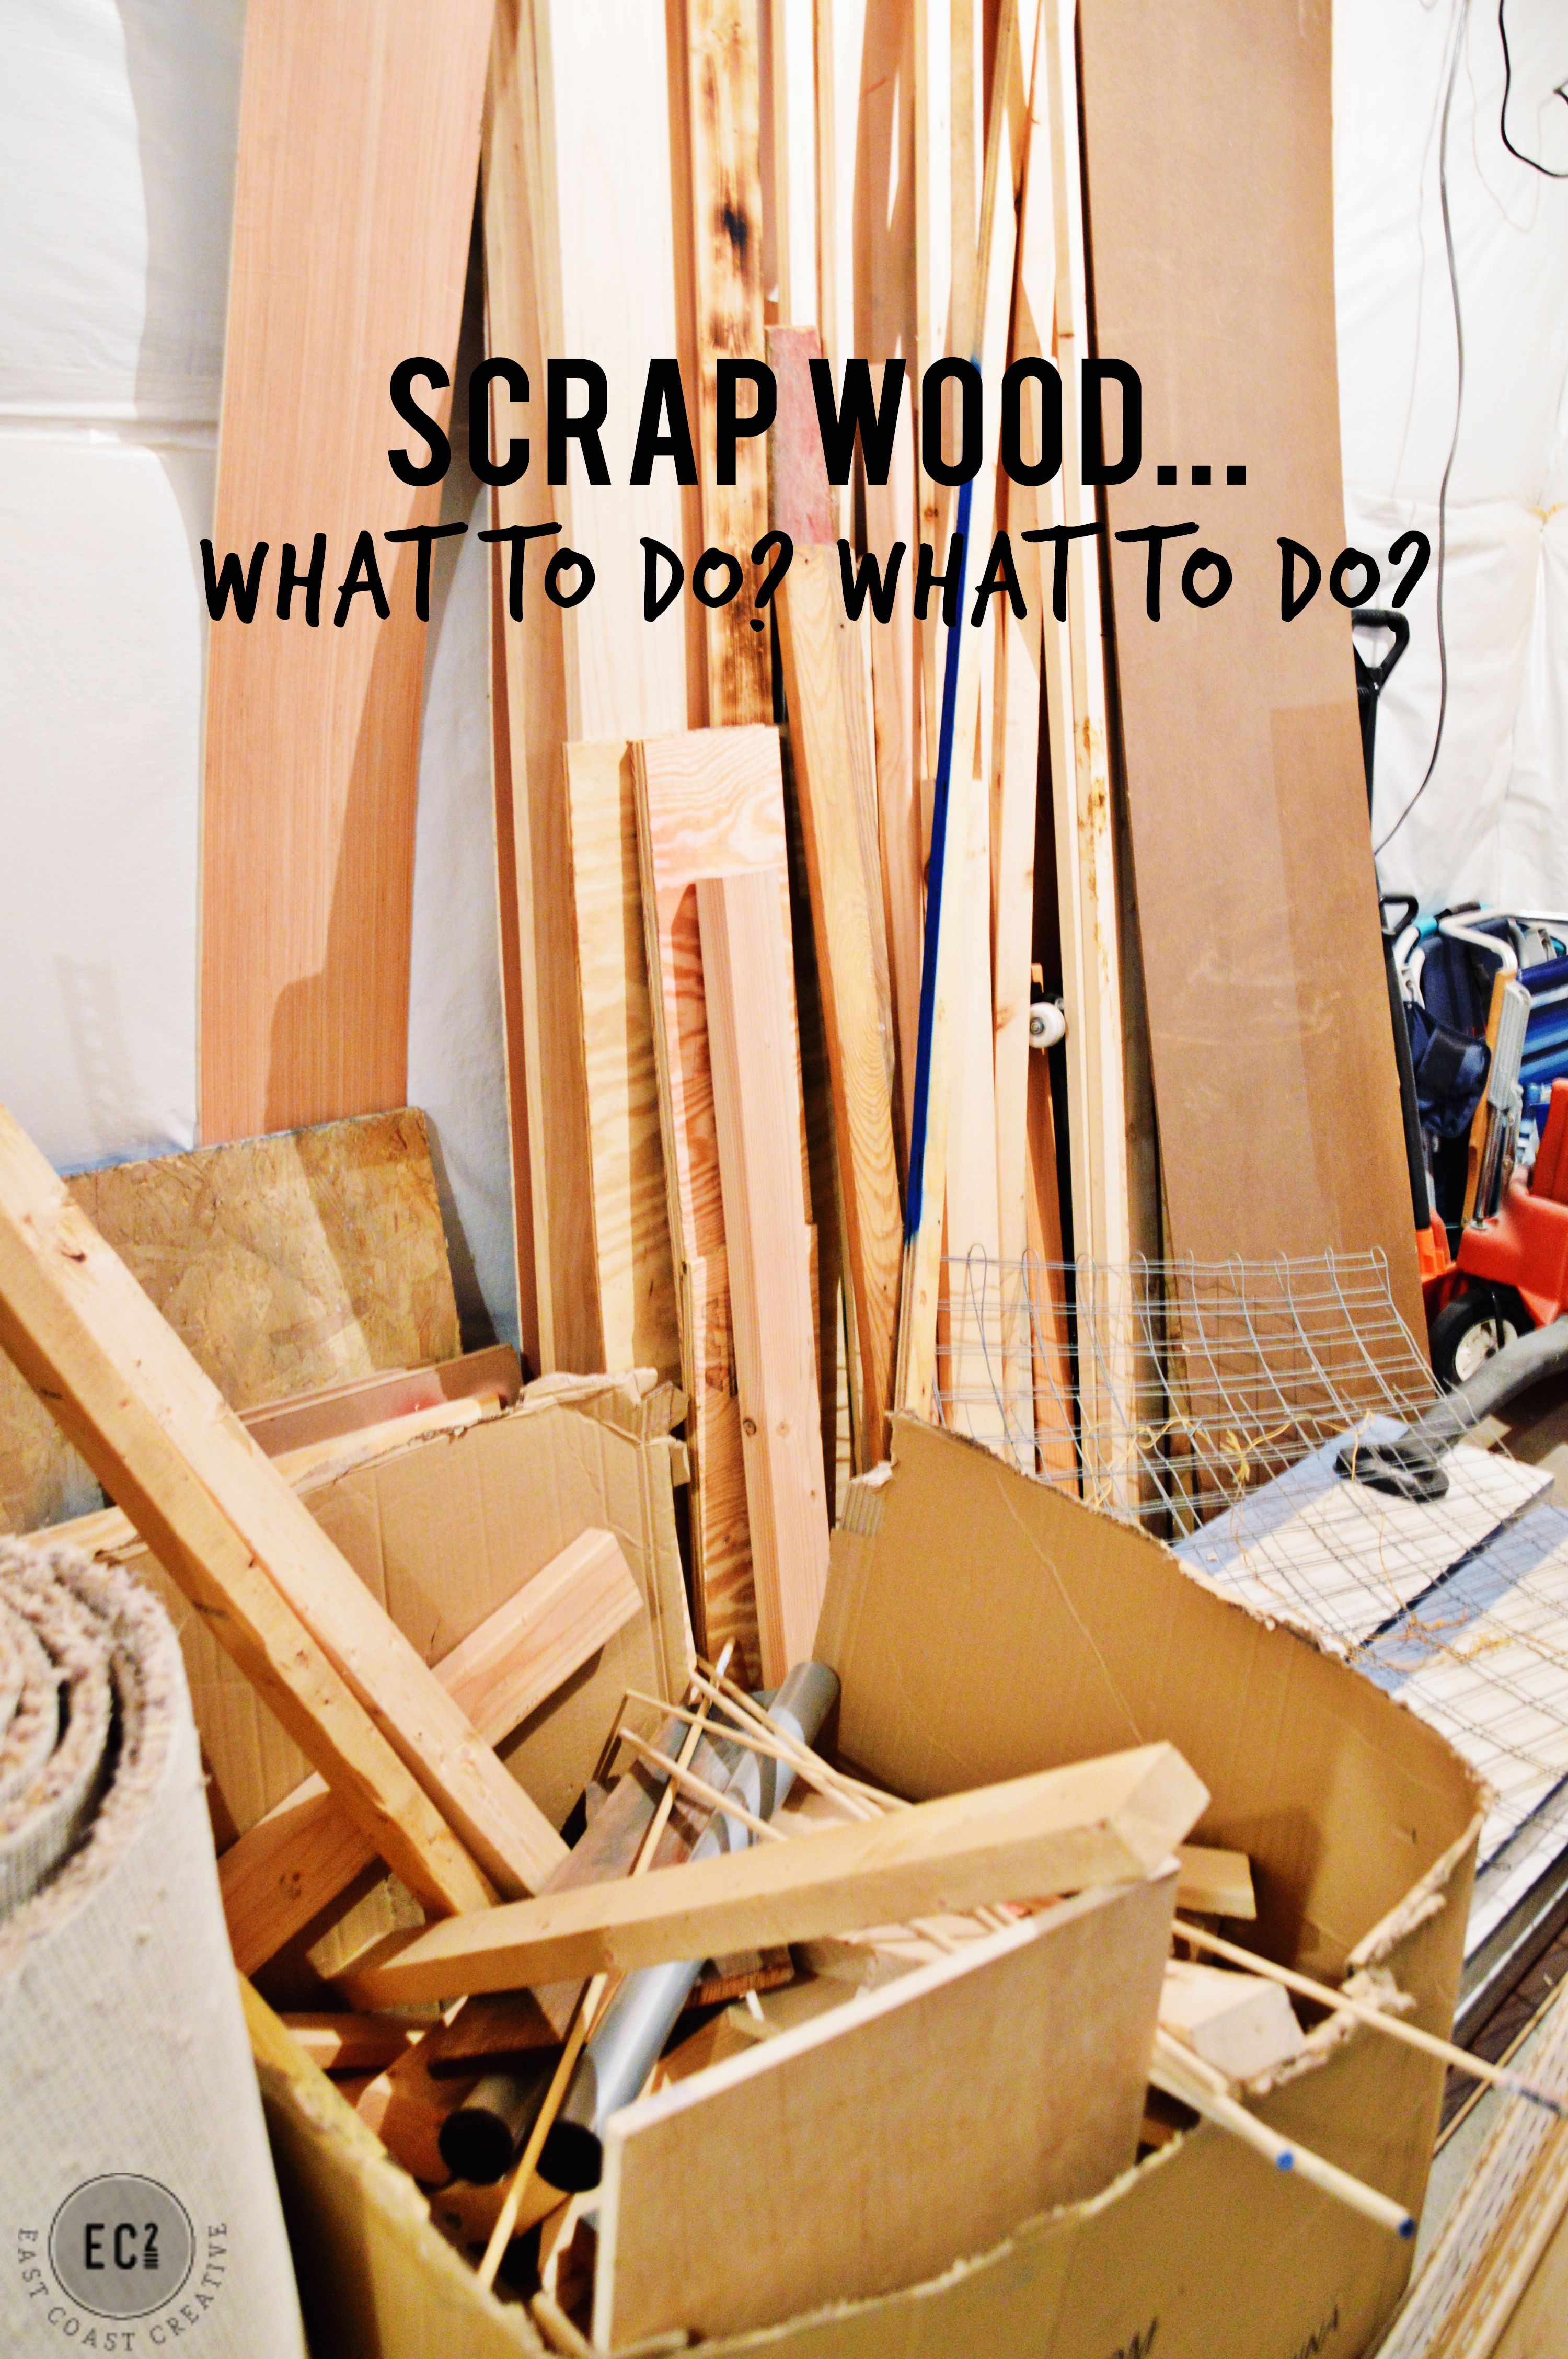 Diy projects with small scrap wood